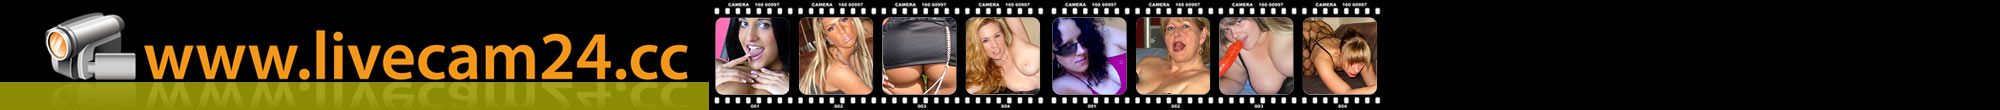 HotLetitia, 24 Jahre, BH: 75 B - brüste 75dd -  - Video Web Cams Live Sex Chat von heissen Girls